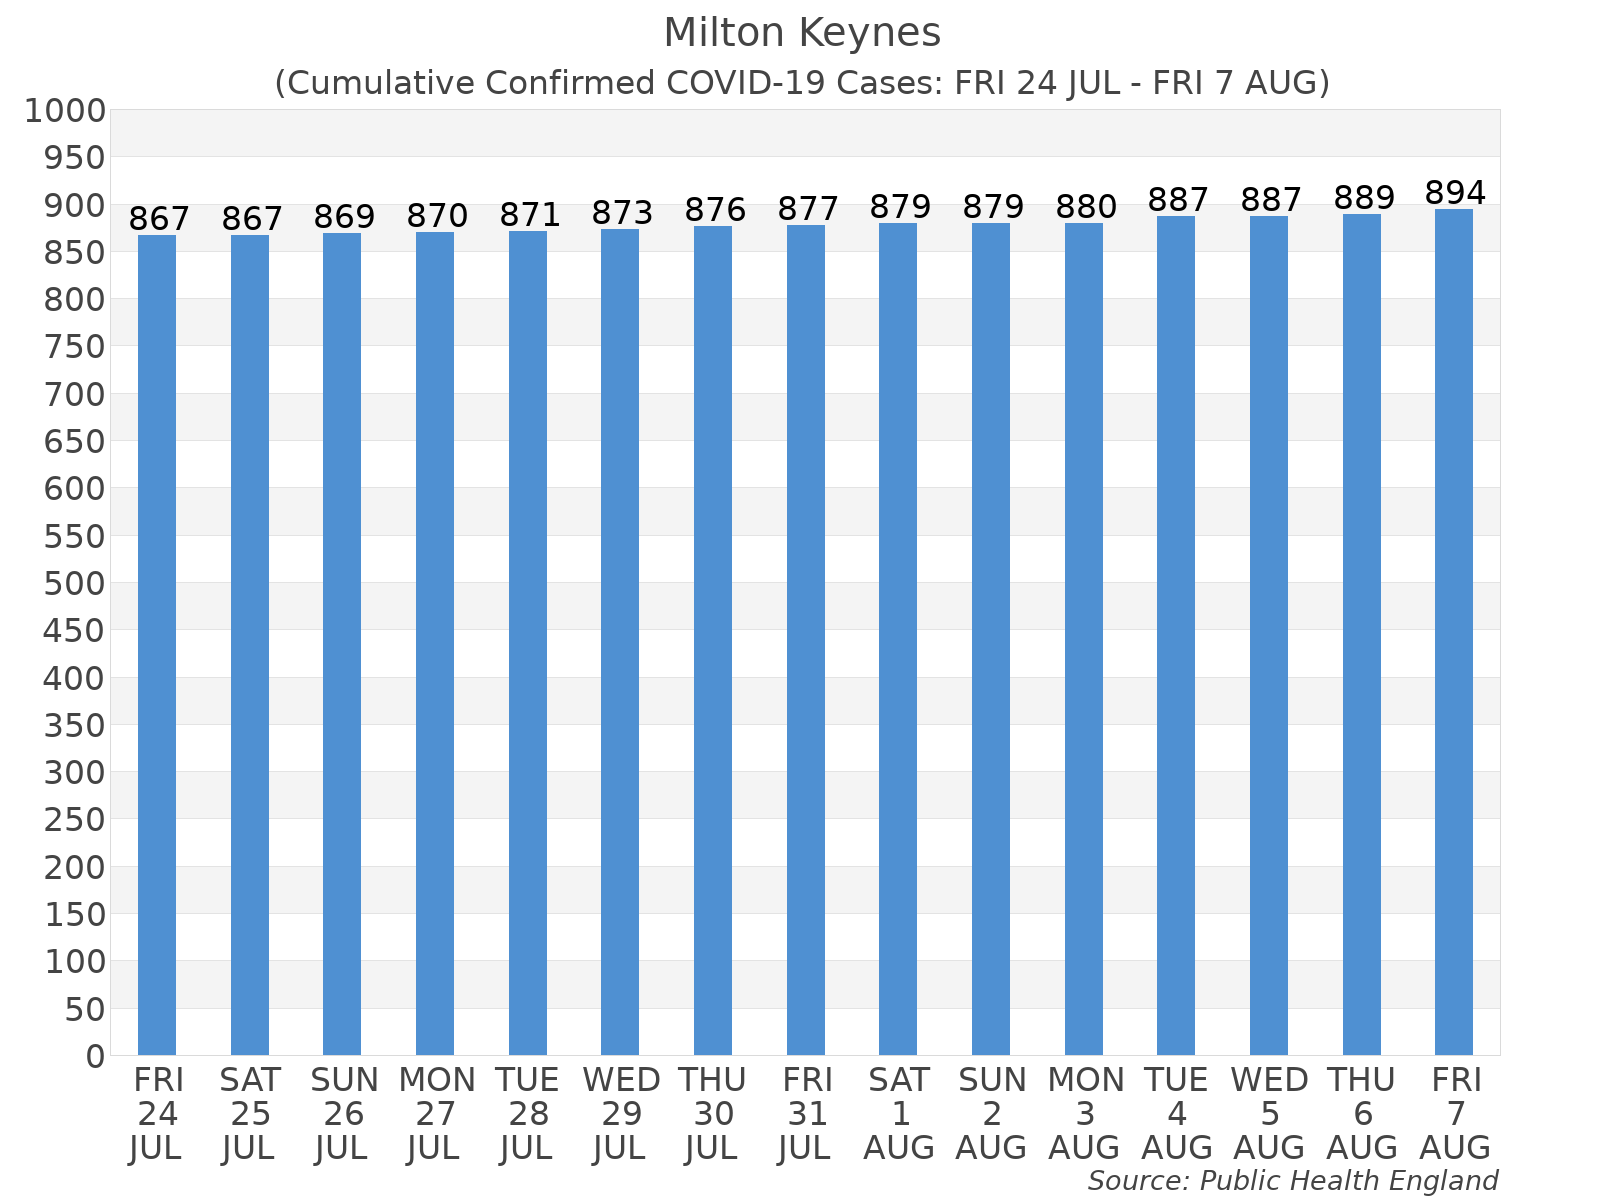 Graph tracking the number of confirmed coronavirus (COVID-19) cases where the patient lives within the Milton Keynes Upper Tier Local Authority Area.